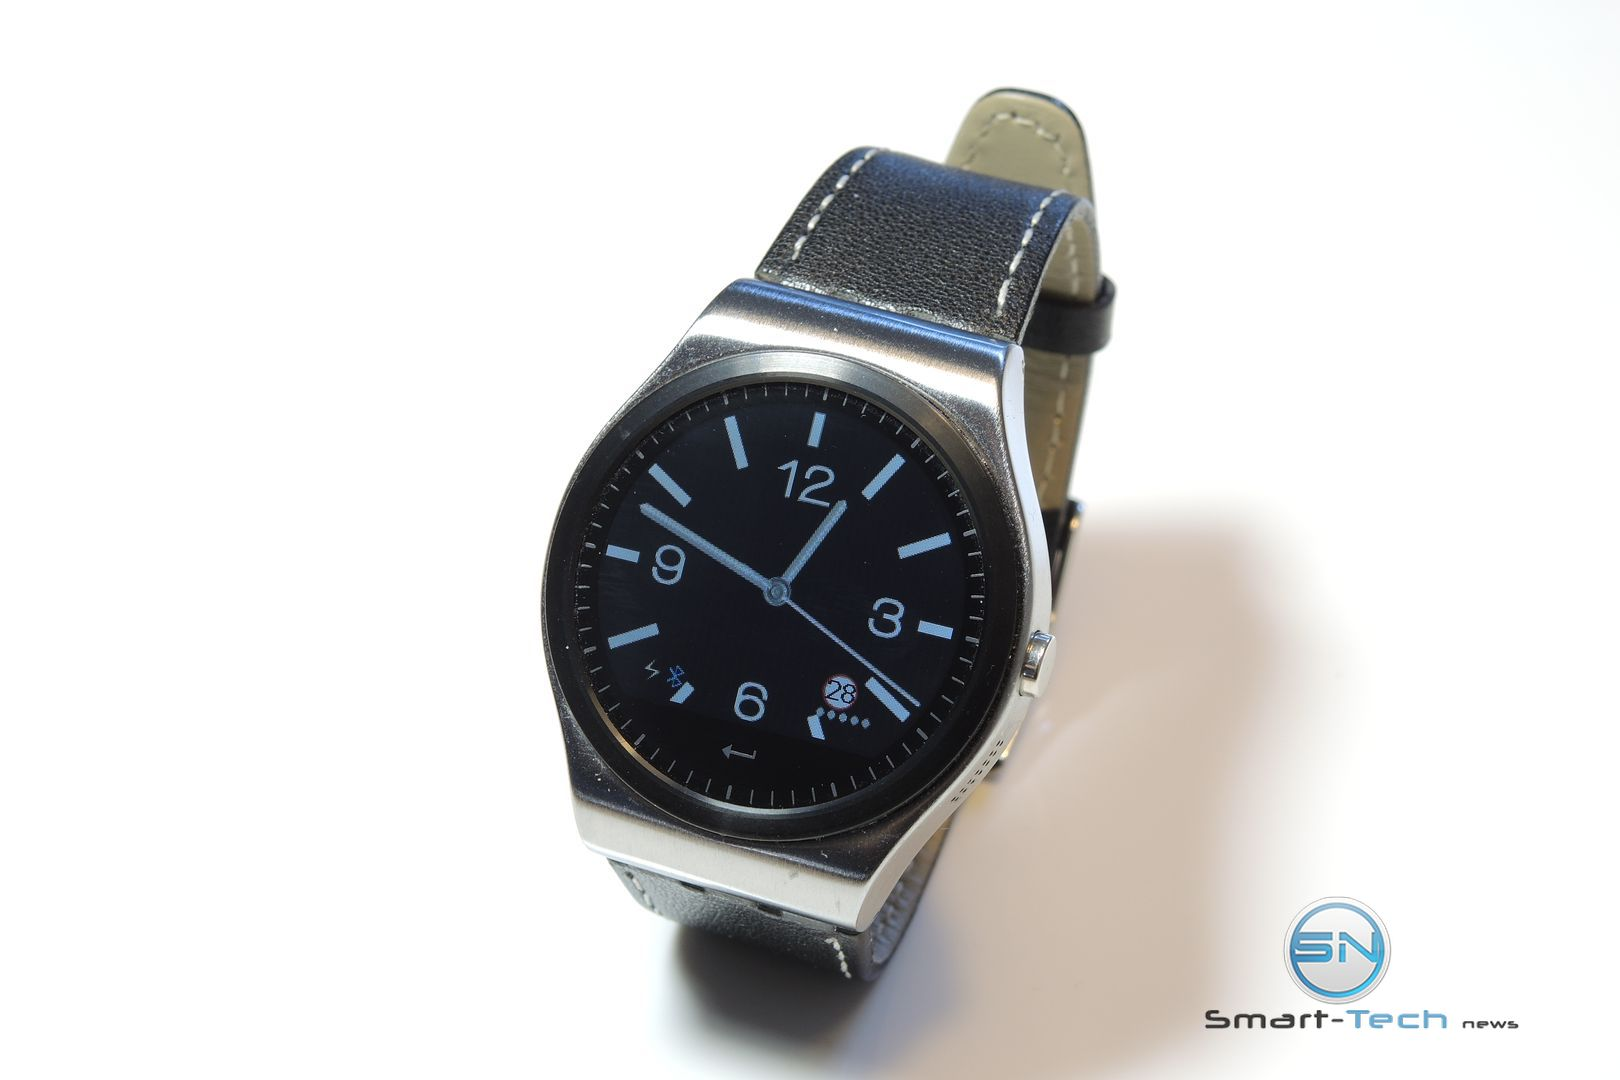 SmartWatch – Simvalley SW-180.hr